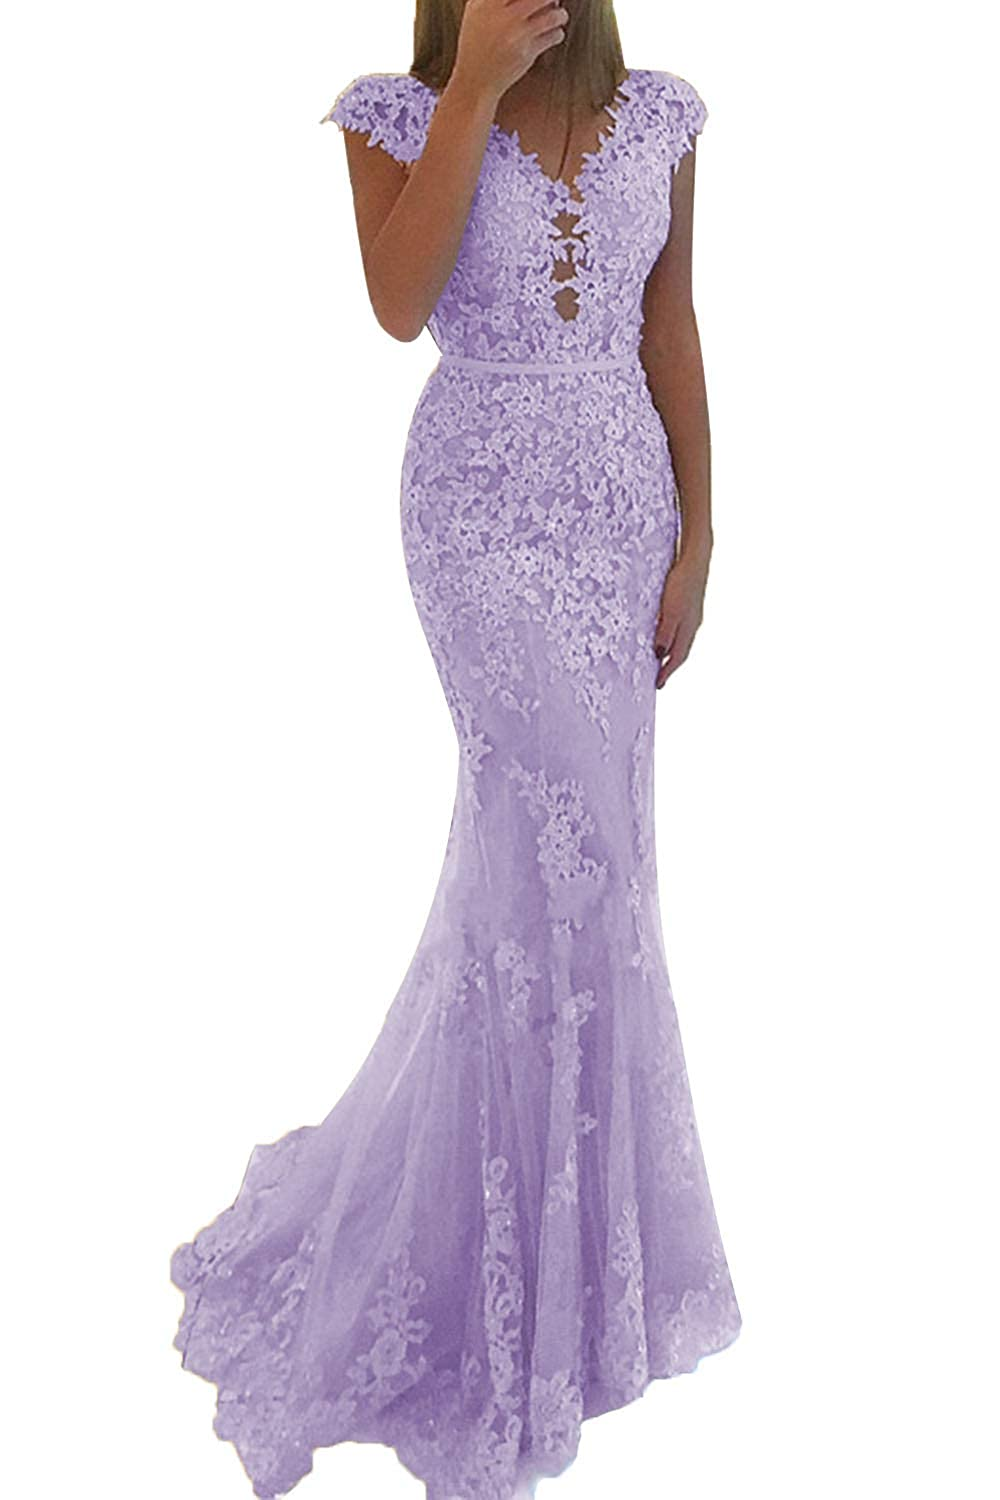 Lavender Promworld Women's Lace Applique Beaded Mermaid Prom Dress Cap Sleeve Tulle Evening Gowns Formal